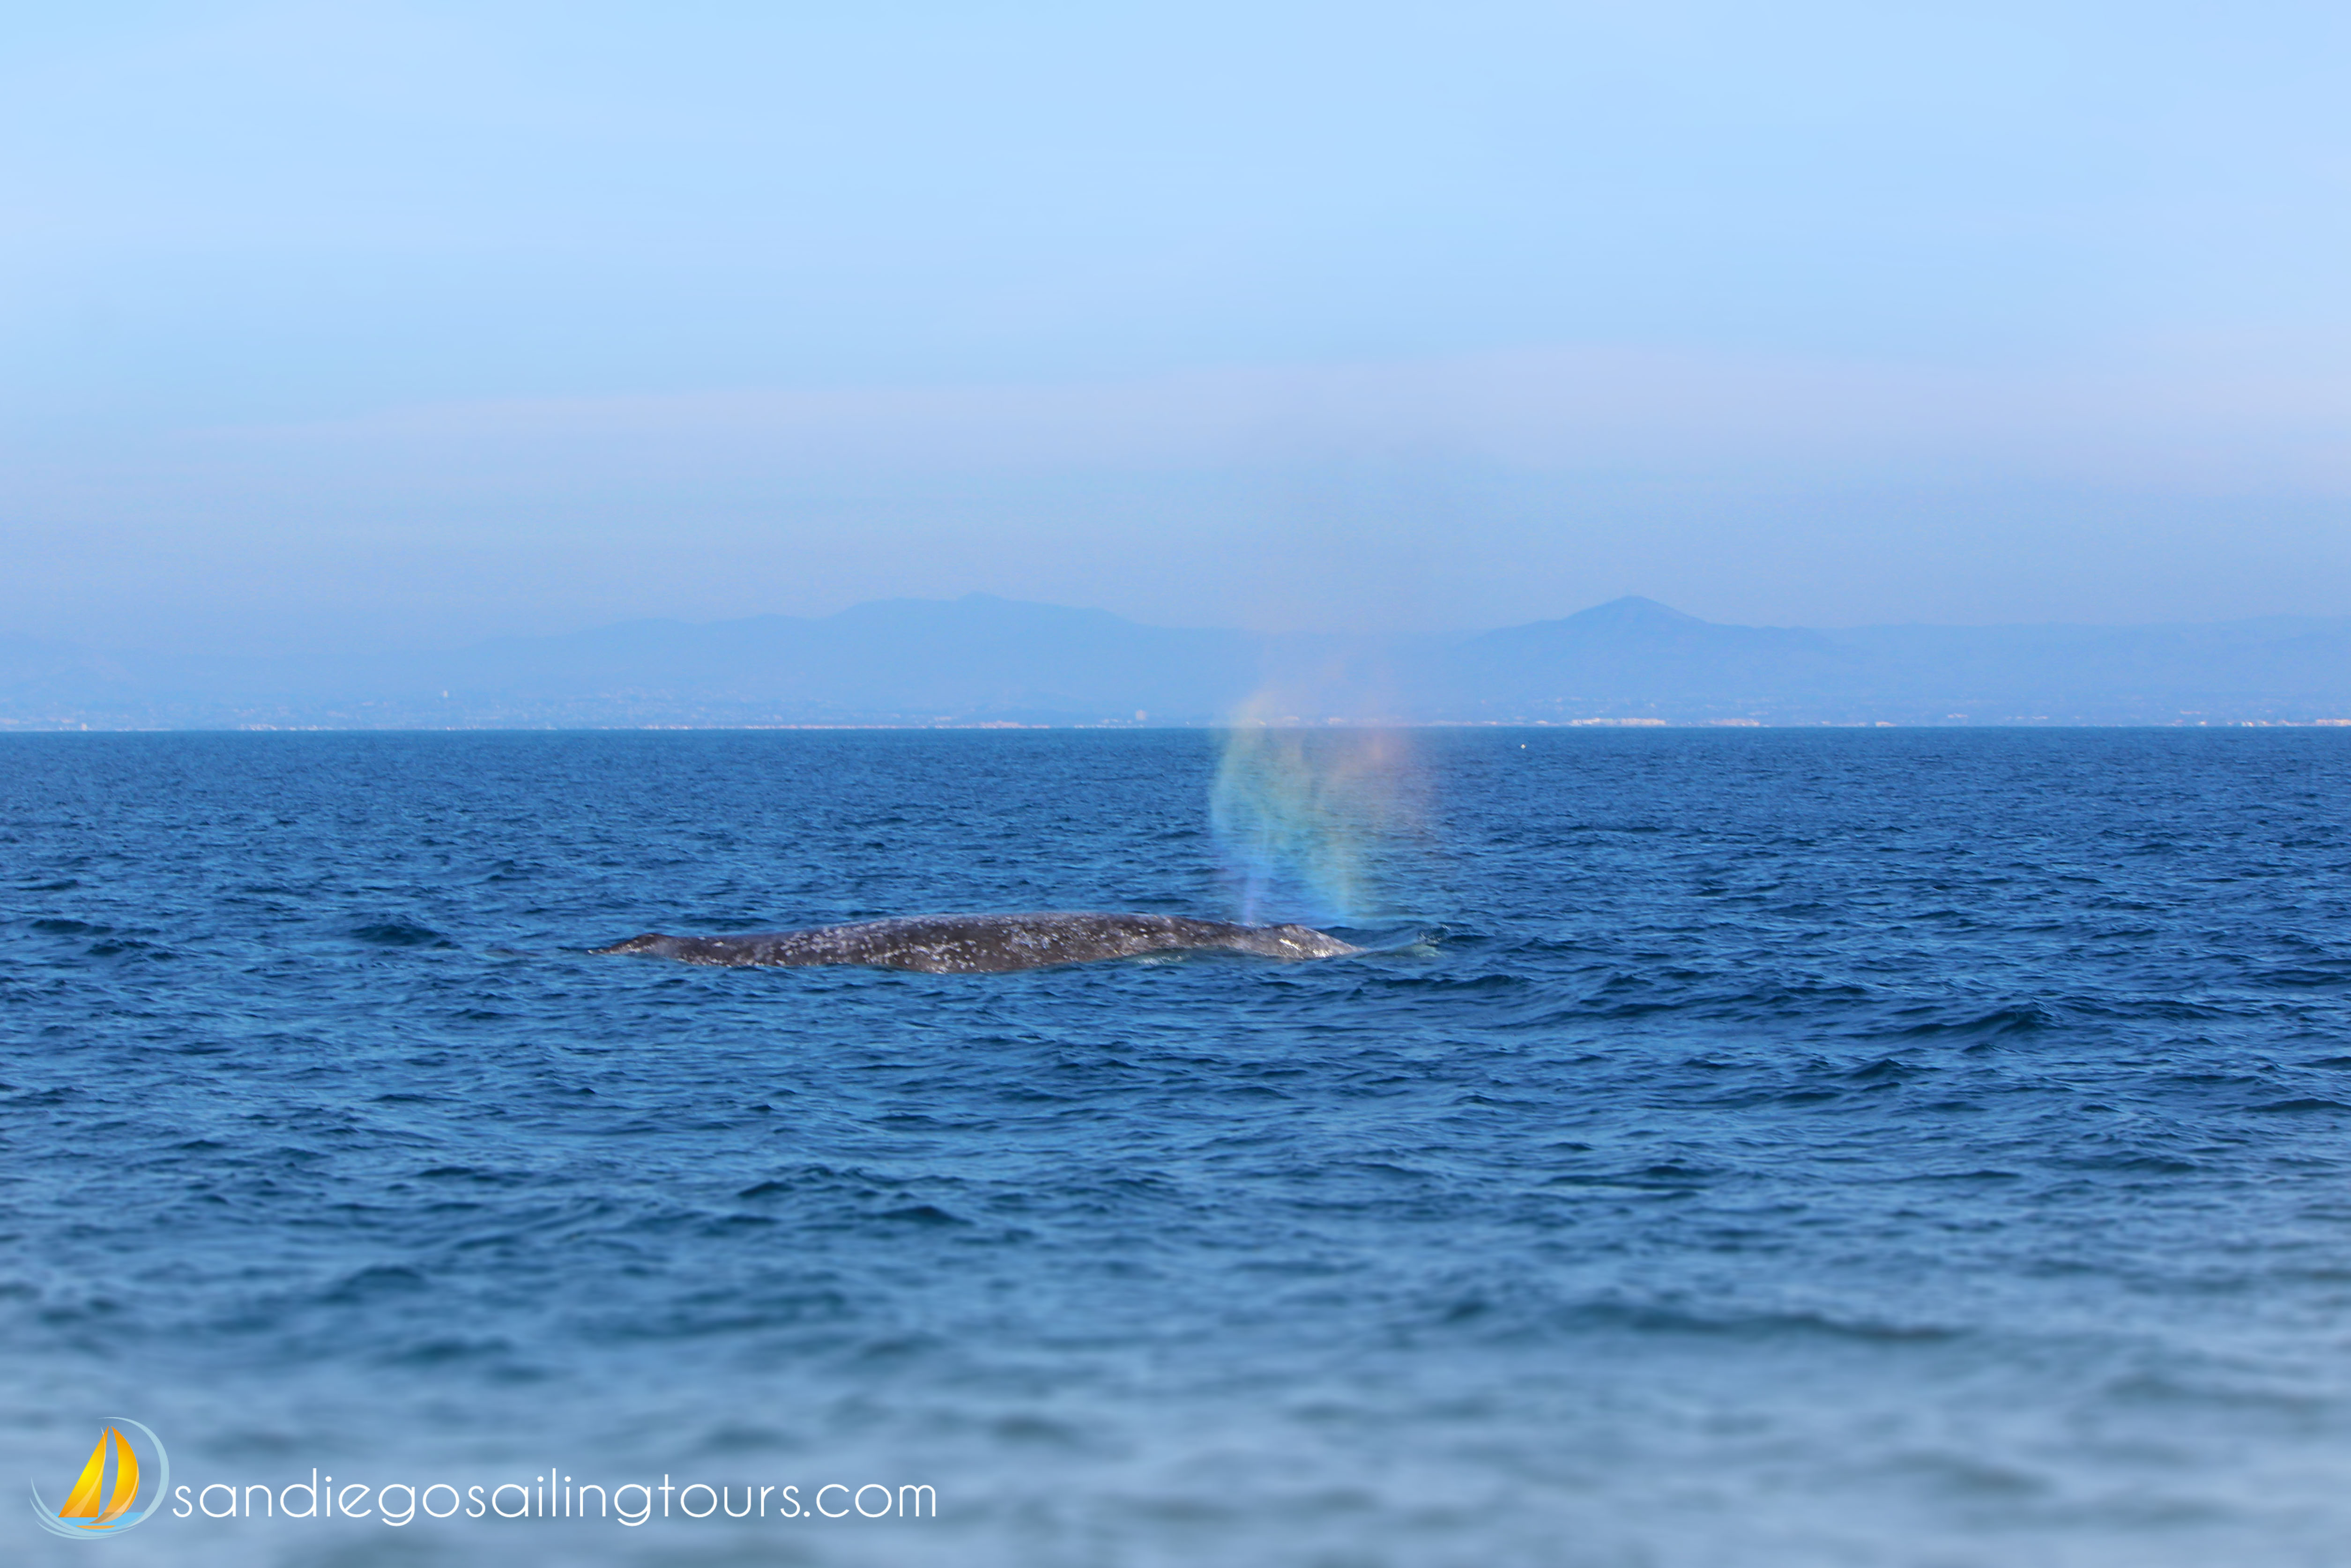 Featured Image: Rainbow Whale